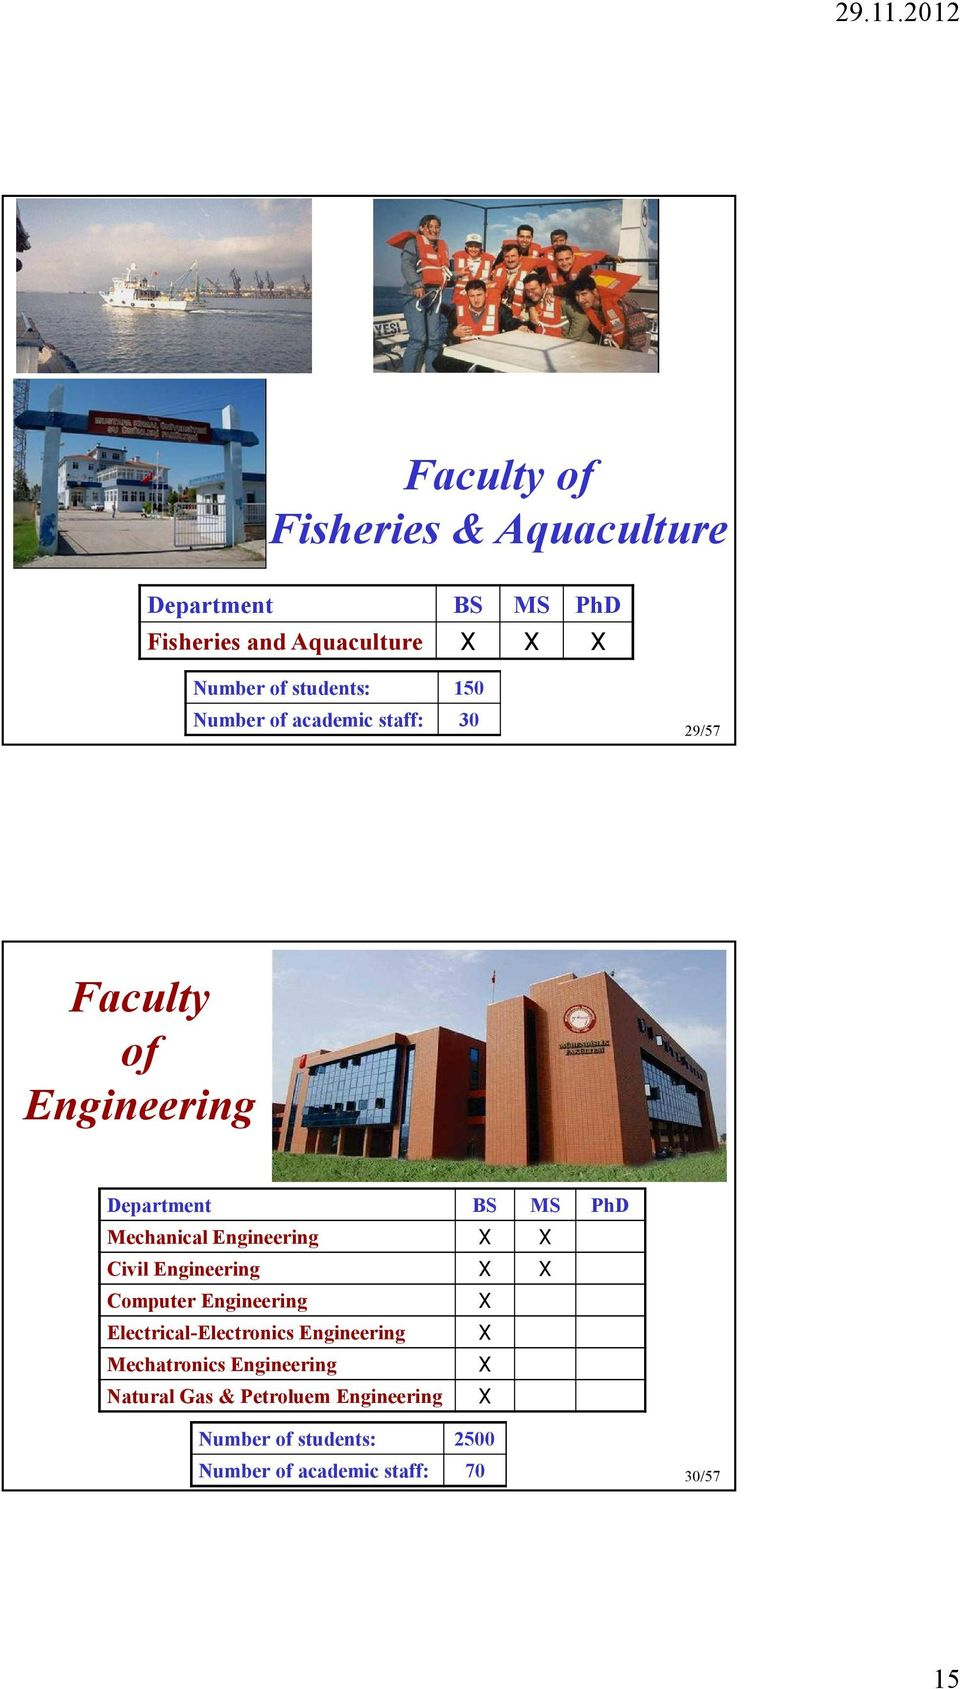 Engineering Computer Engineering Electrical-Electronics Engineering Mechatronics